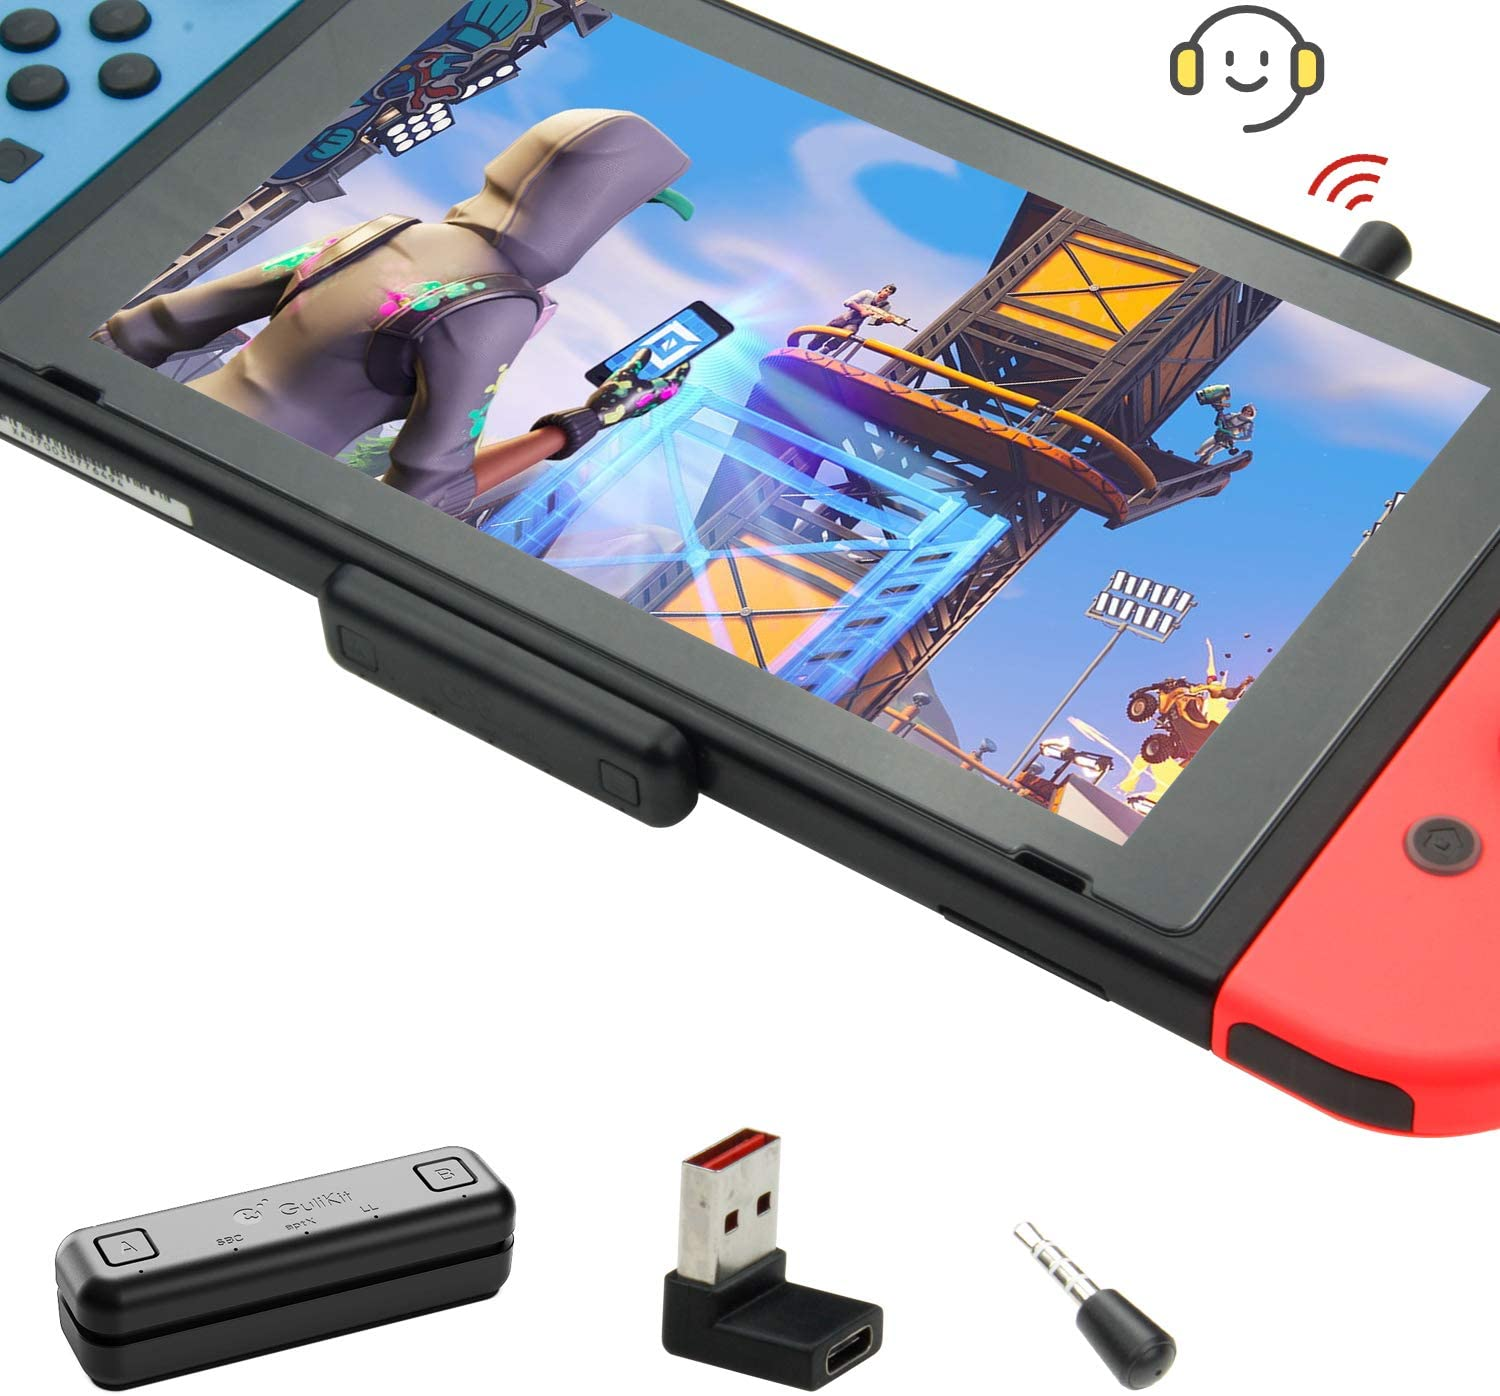 GULIkit Route Air Pro Adaptador Bluetooth para Nintendo Switch ...